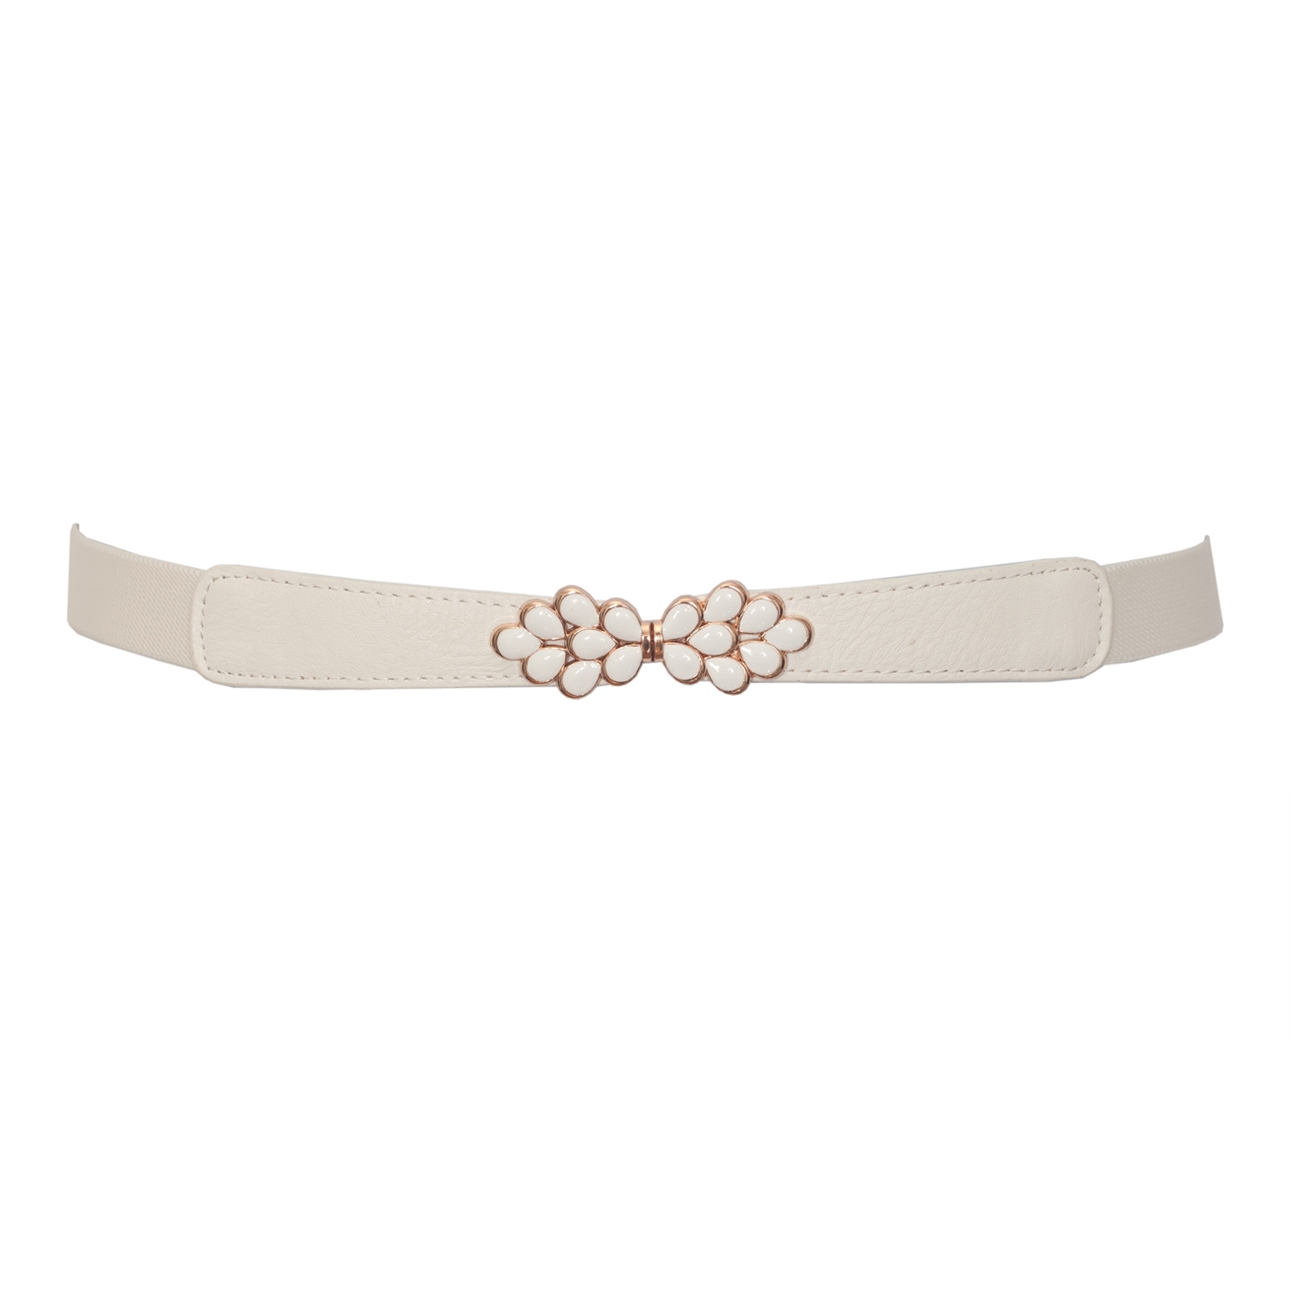 Plus size Flower Buckle Skinny Elastic Belt Off White